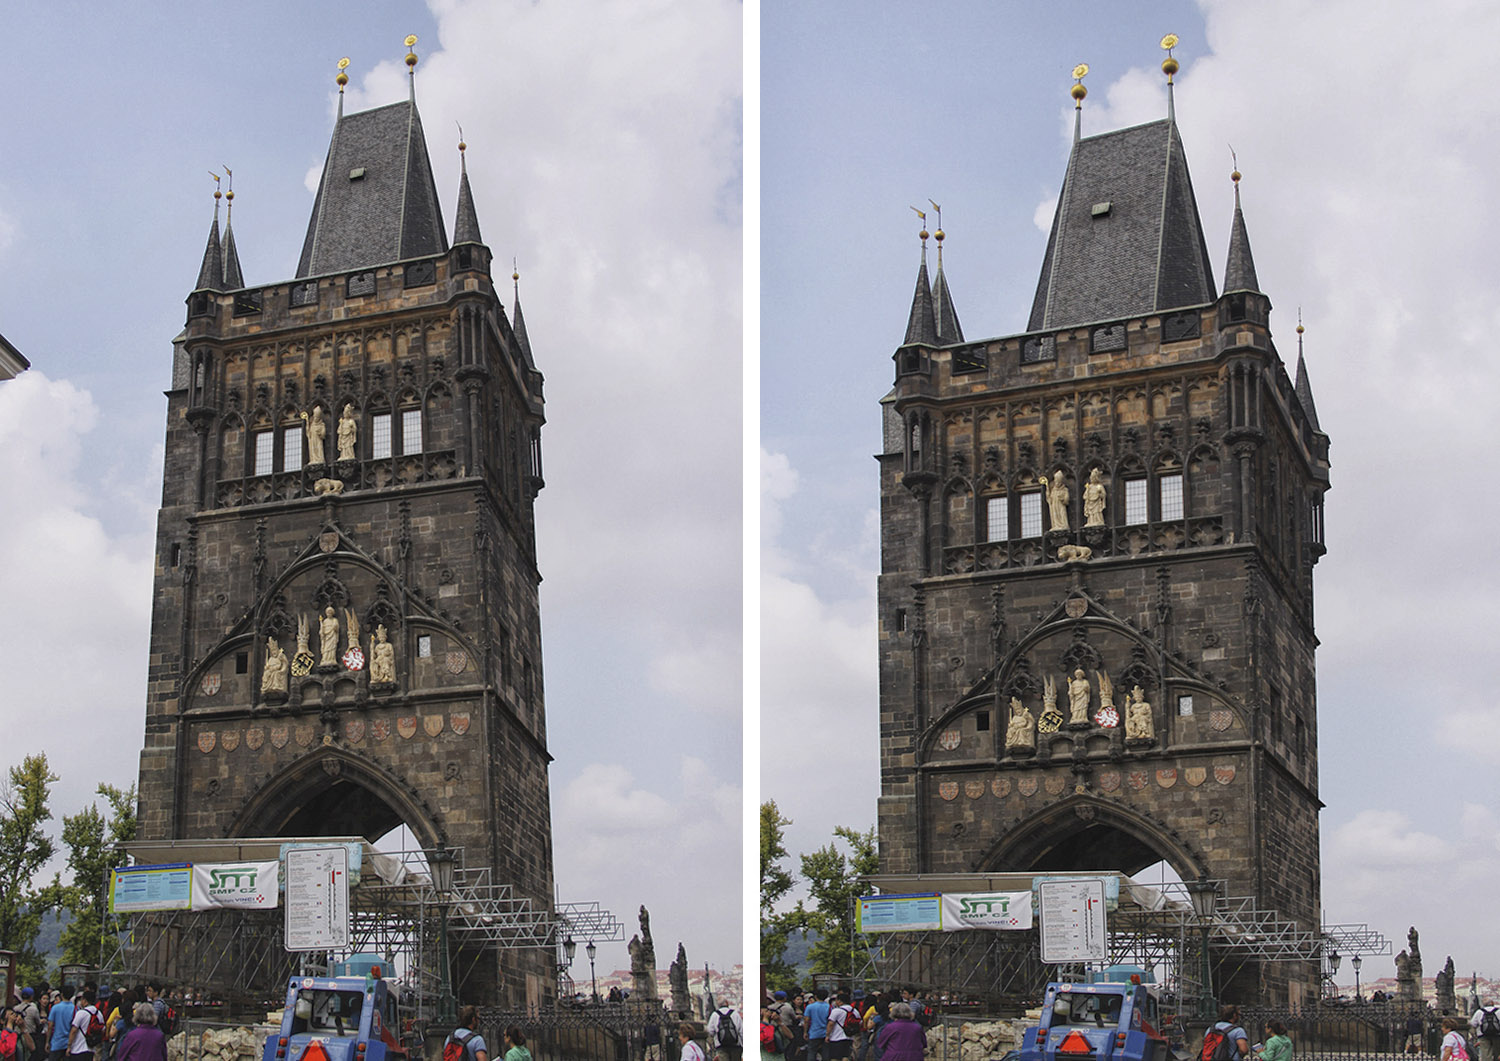 How to Correct Perspective Distortion in Photoshop